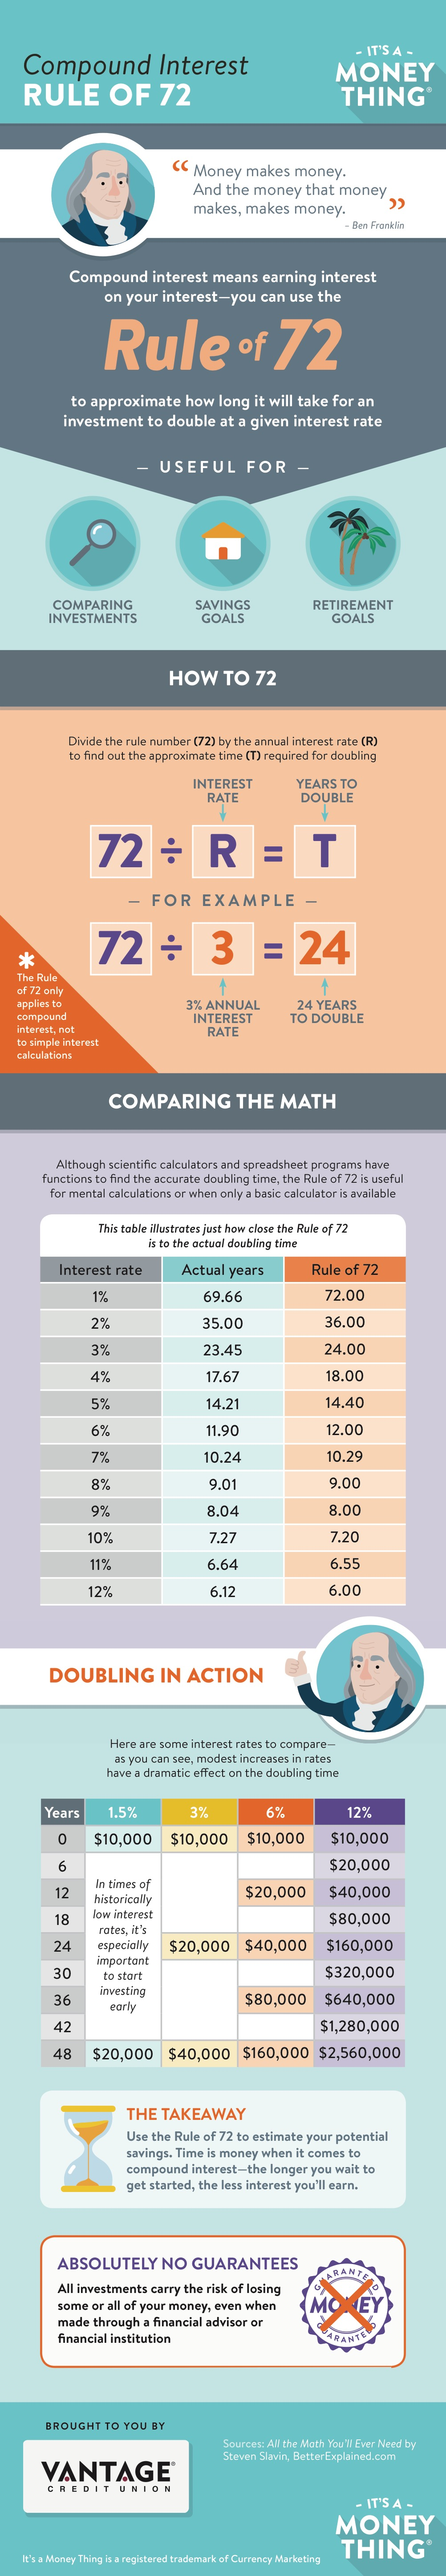 compound-interest-rule-of-72-infographic